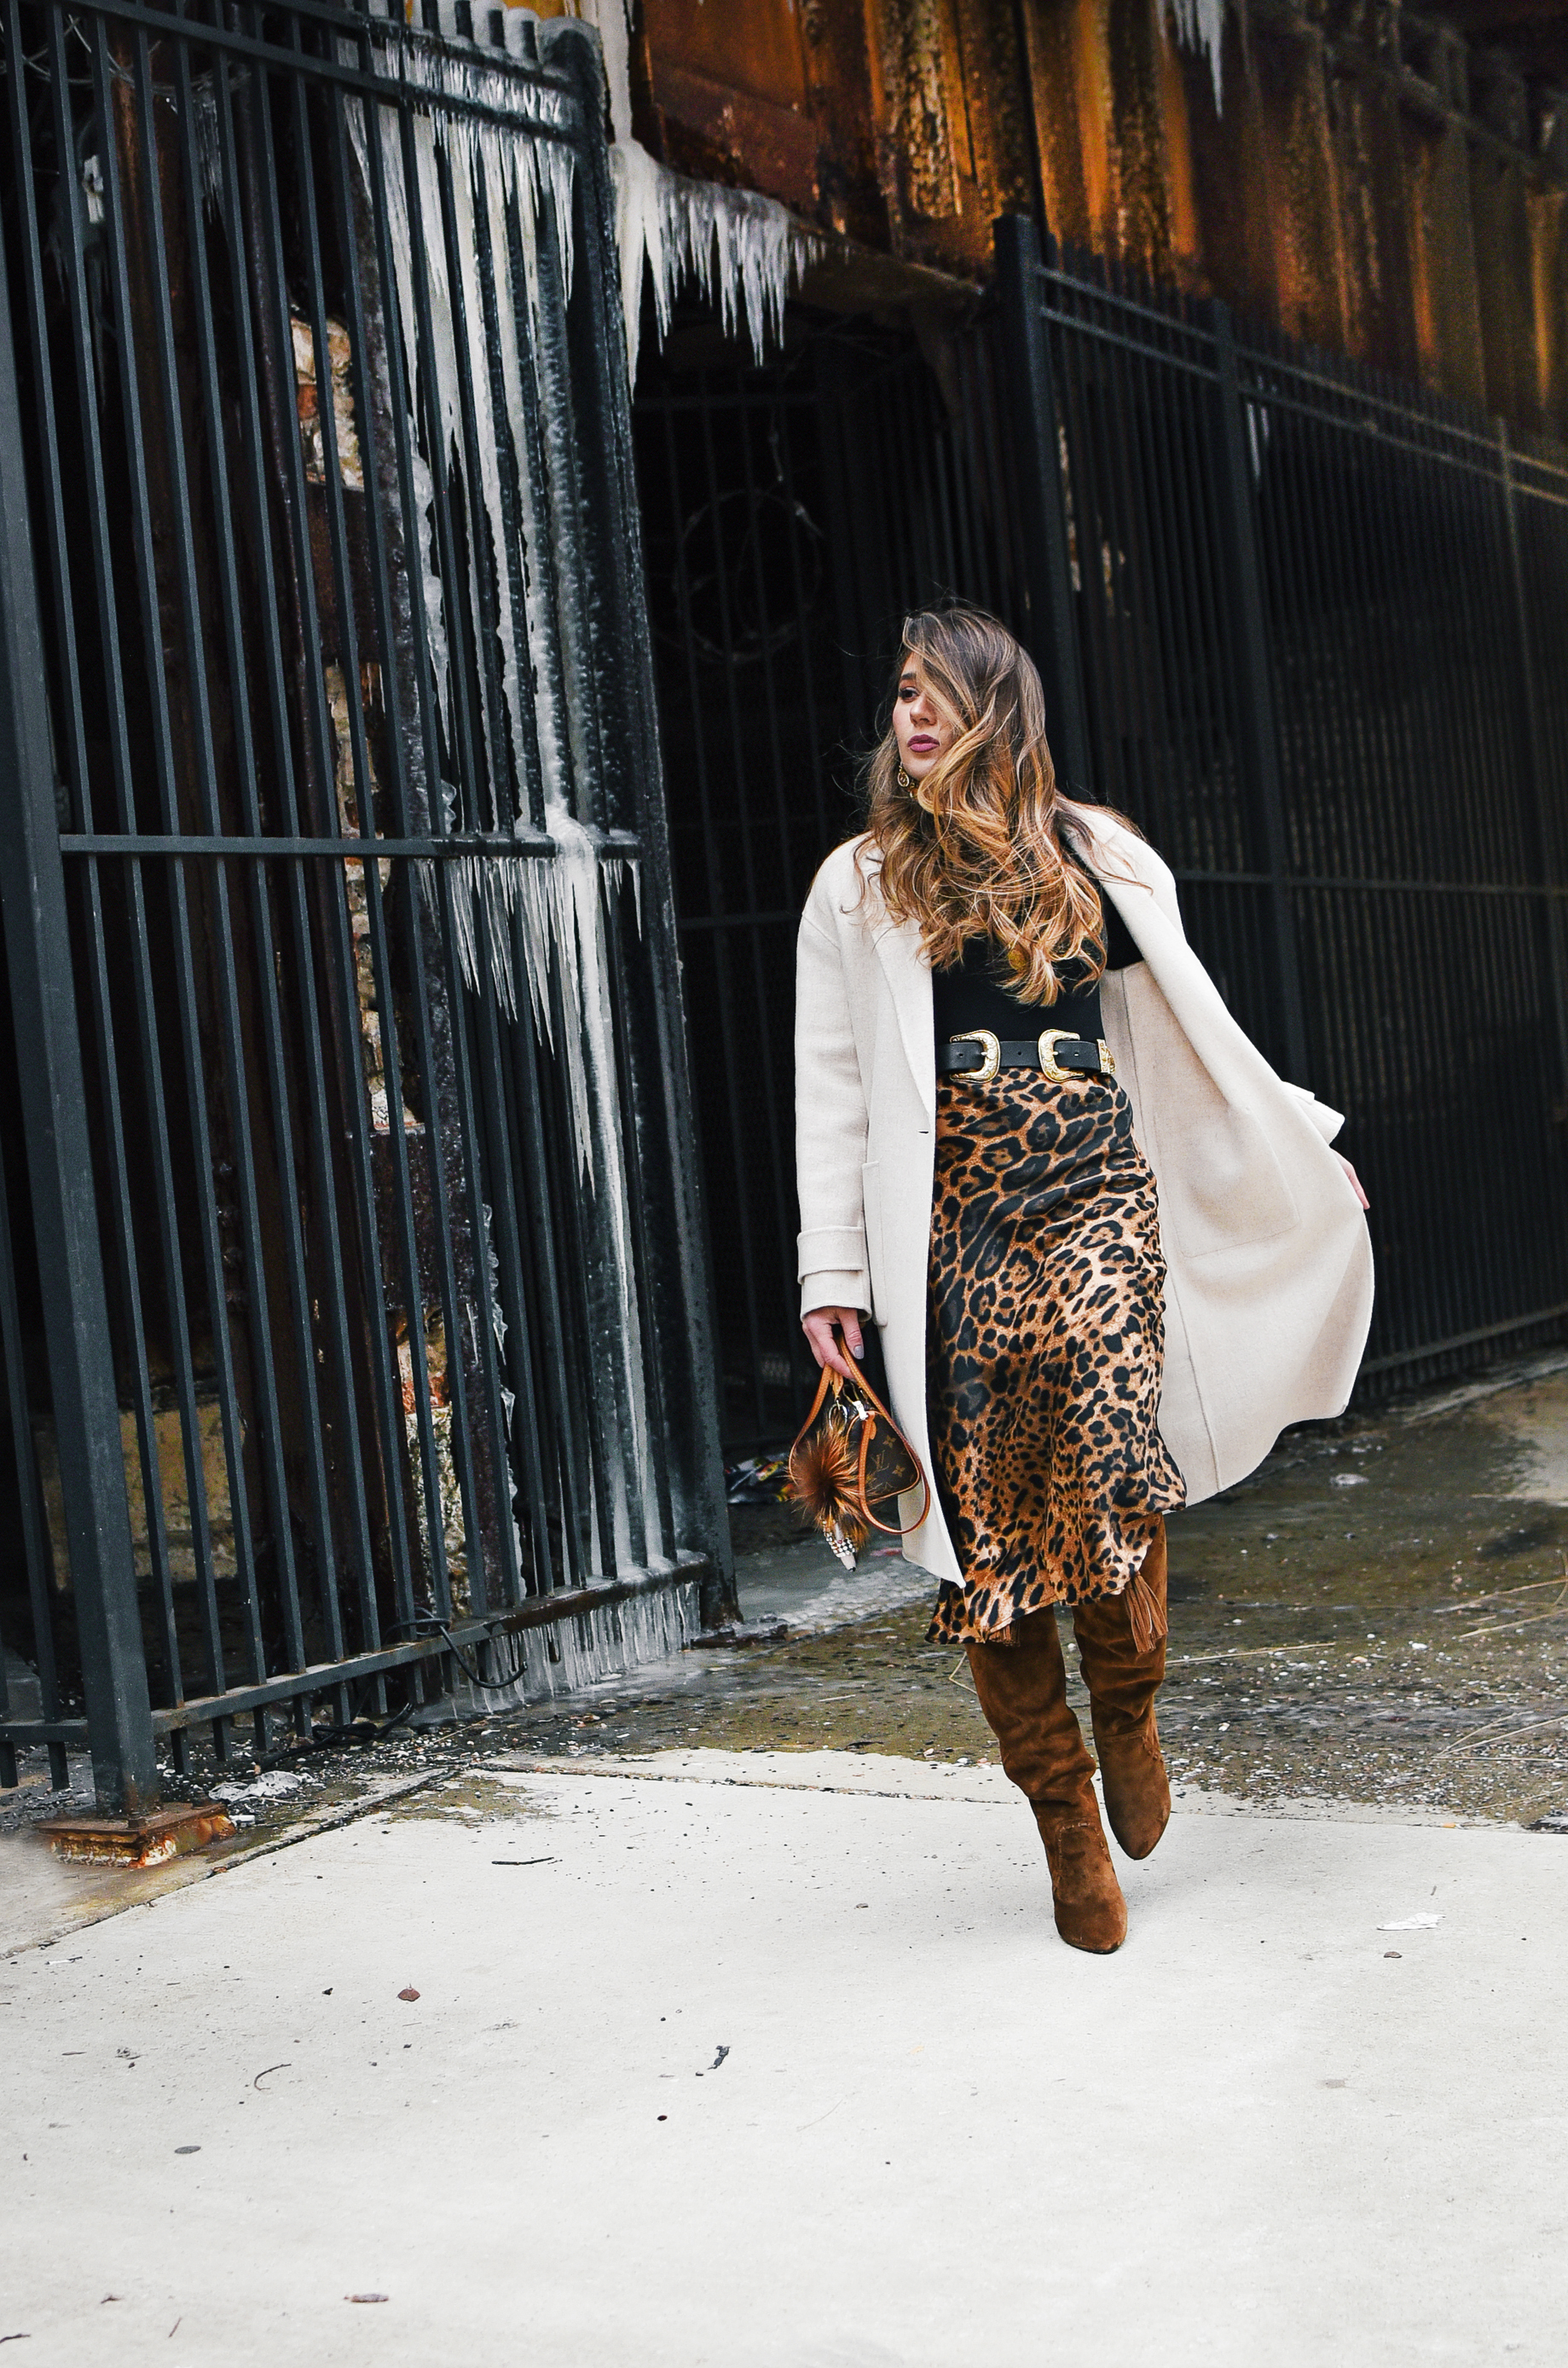 cheetah-skirt-ysl-fringe-boot-long-trench-coat-winter-spring-layers-style-outfit